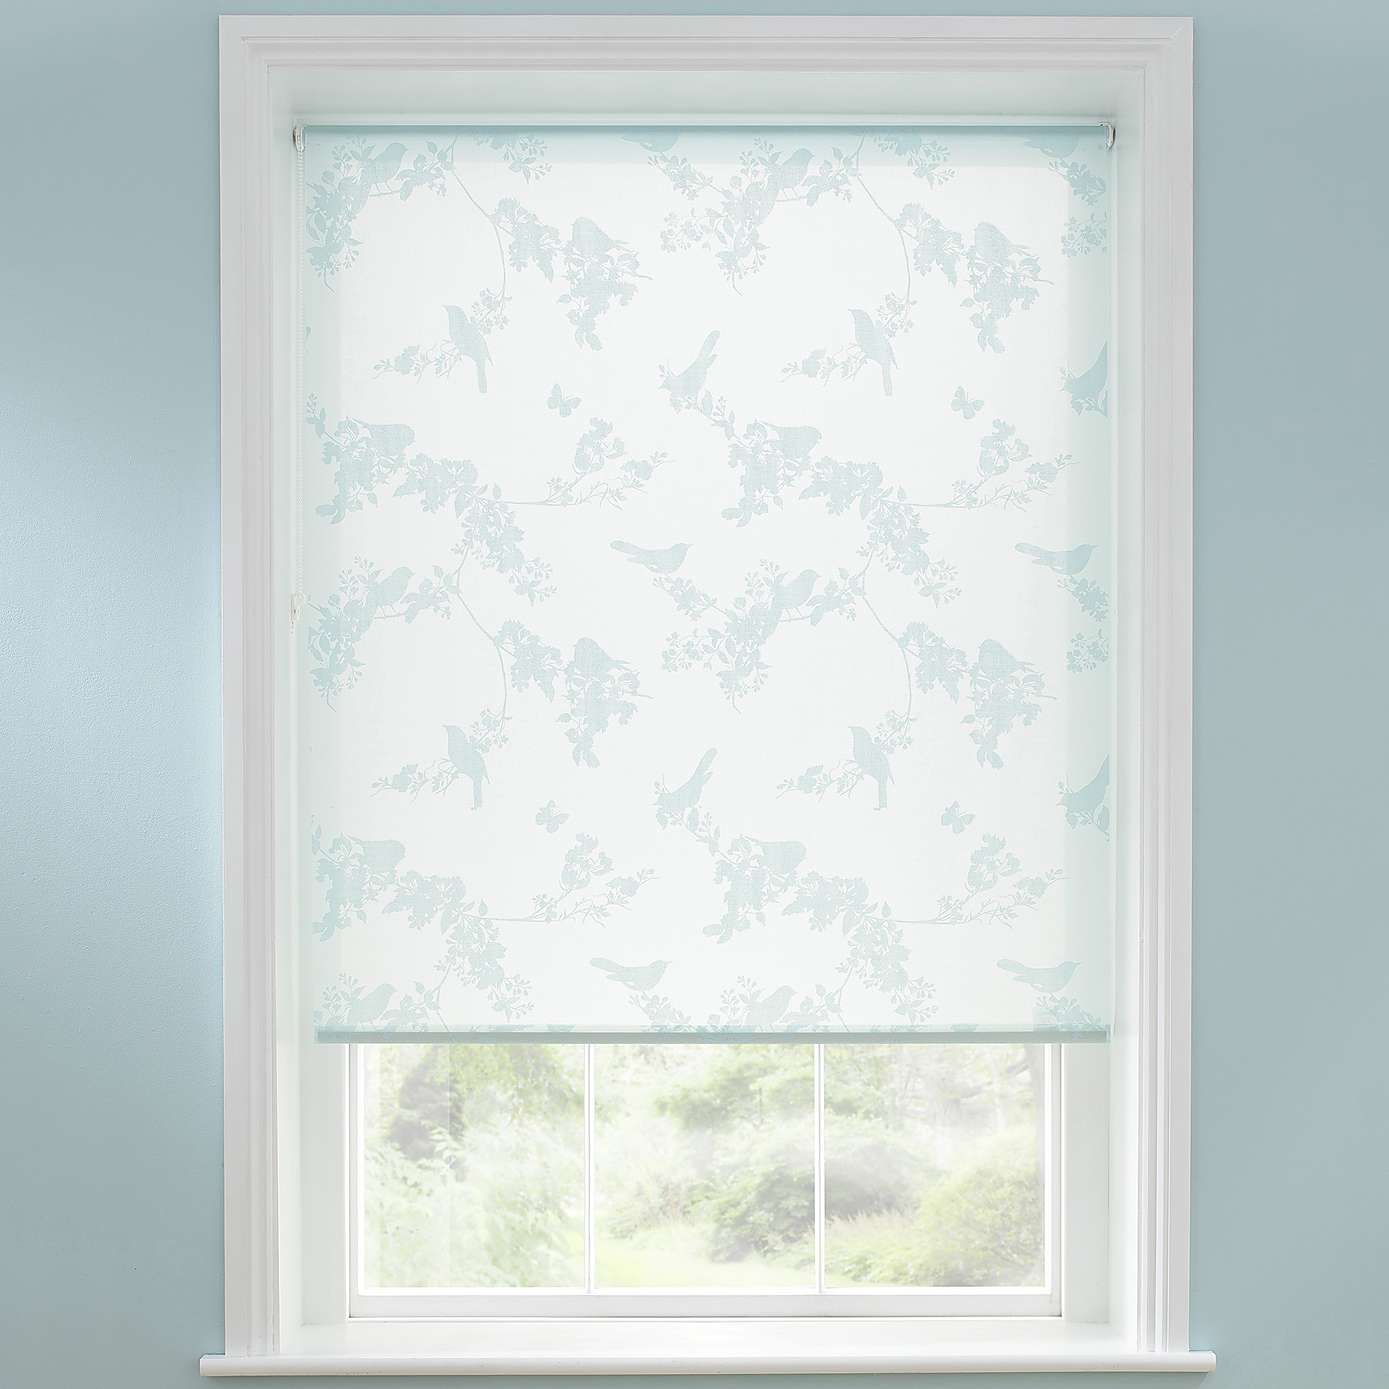 Beautiful Birds Sheer Roller Blind Dunelm Living Room